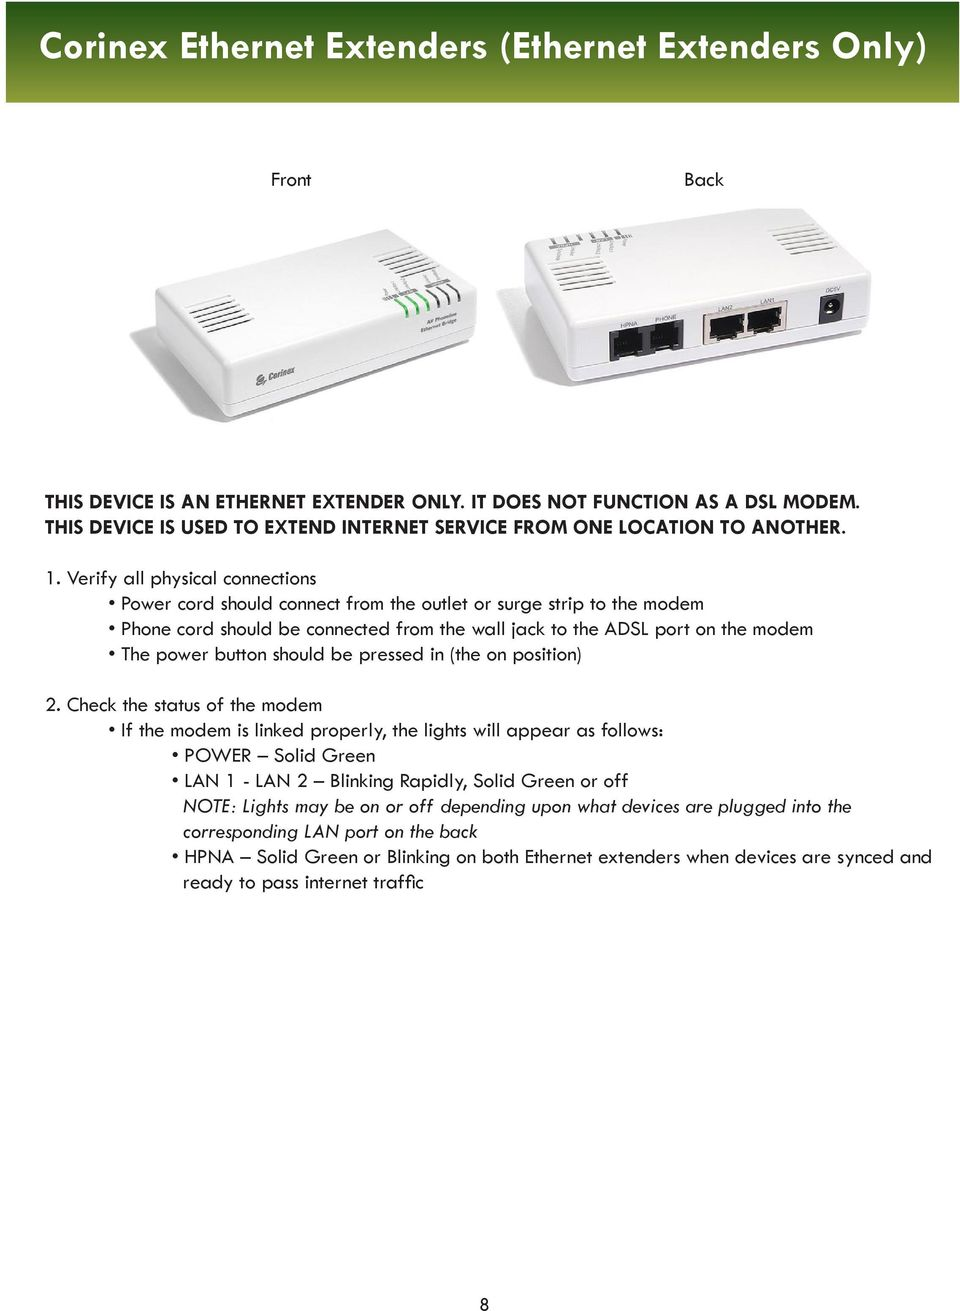 Internet Services Dsl Troubleshooting Guide Help Desk Pdf Inter Connection Together With Rj45 Connector Wiring Diagram Power Cord Should Connect From The Outlet Or Surge Strip To Modem Phone